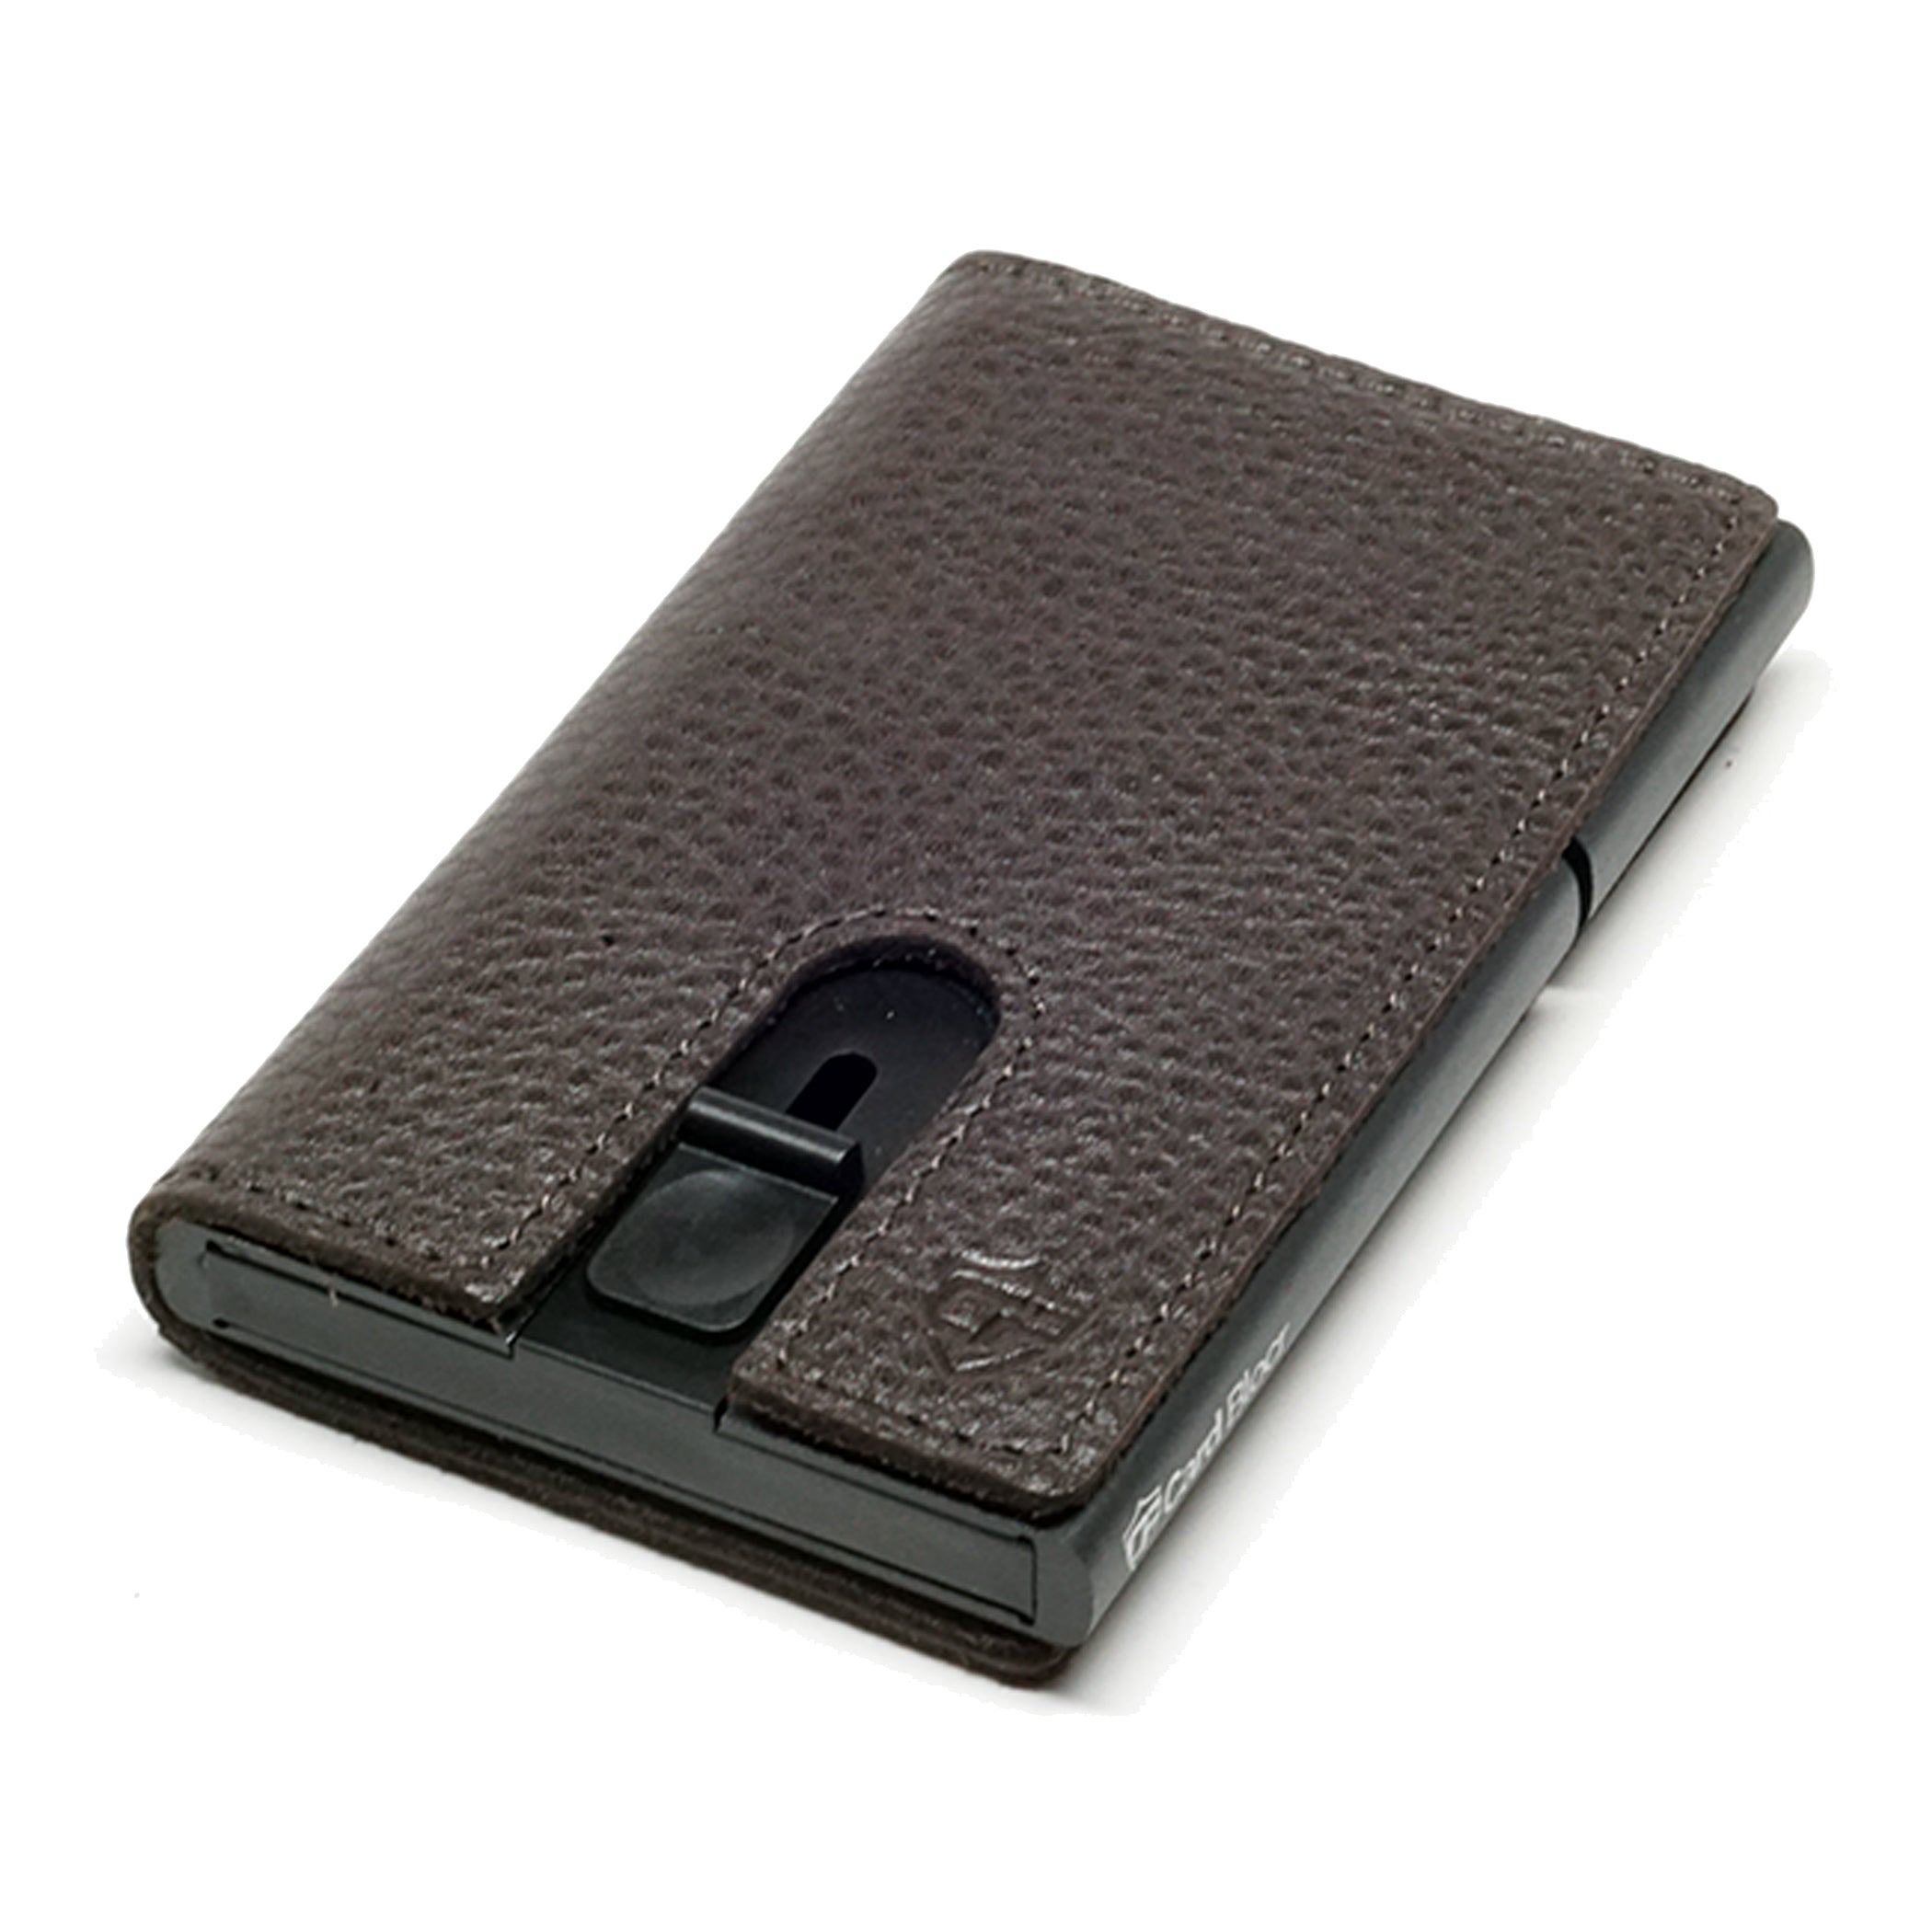 Card Blocr Credit Card Holder in Black Wrapped in Dark Chocolate Brown Leather | RFID Wallet 45 No Cards